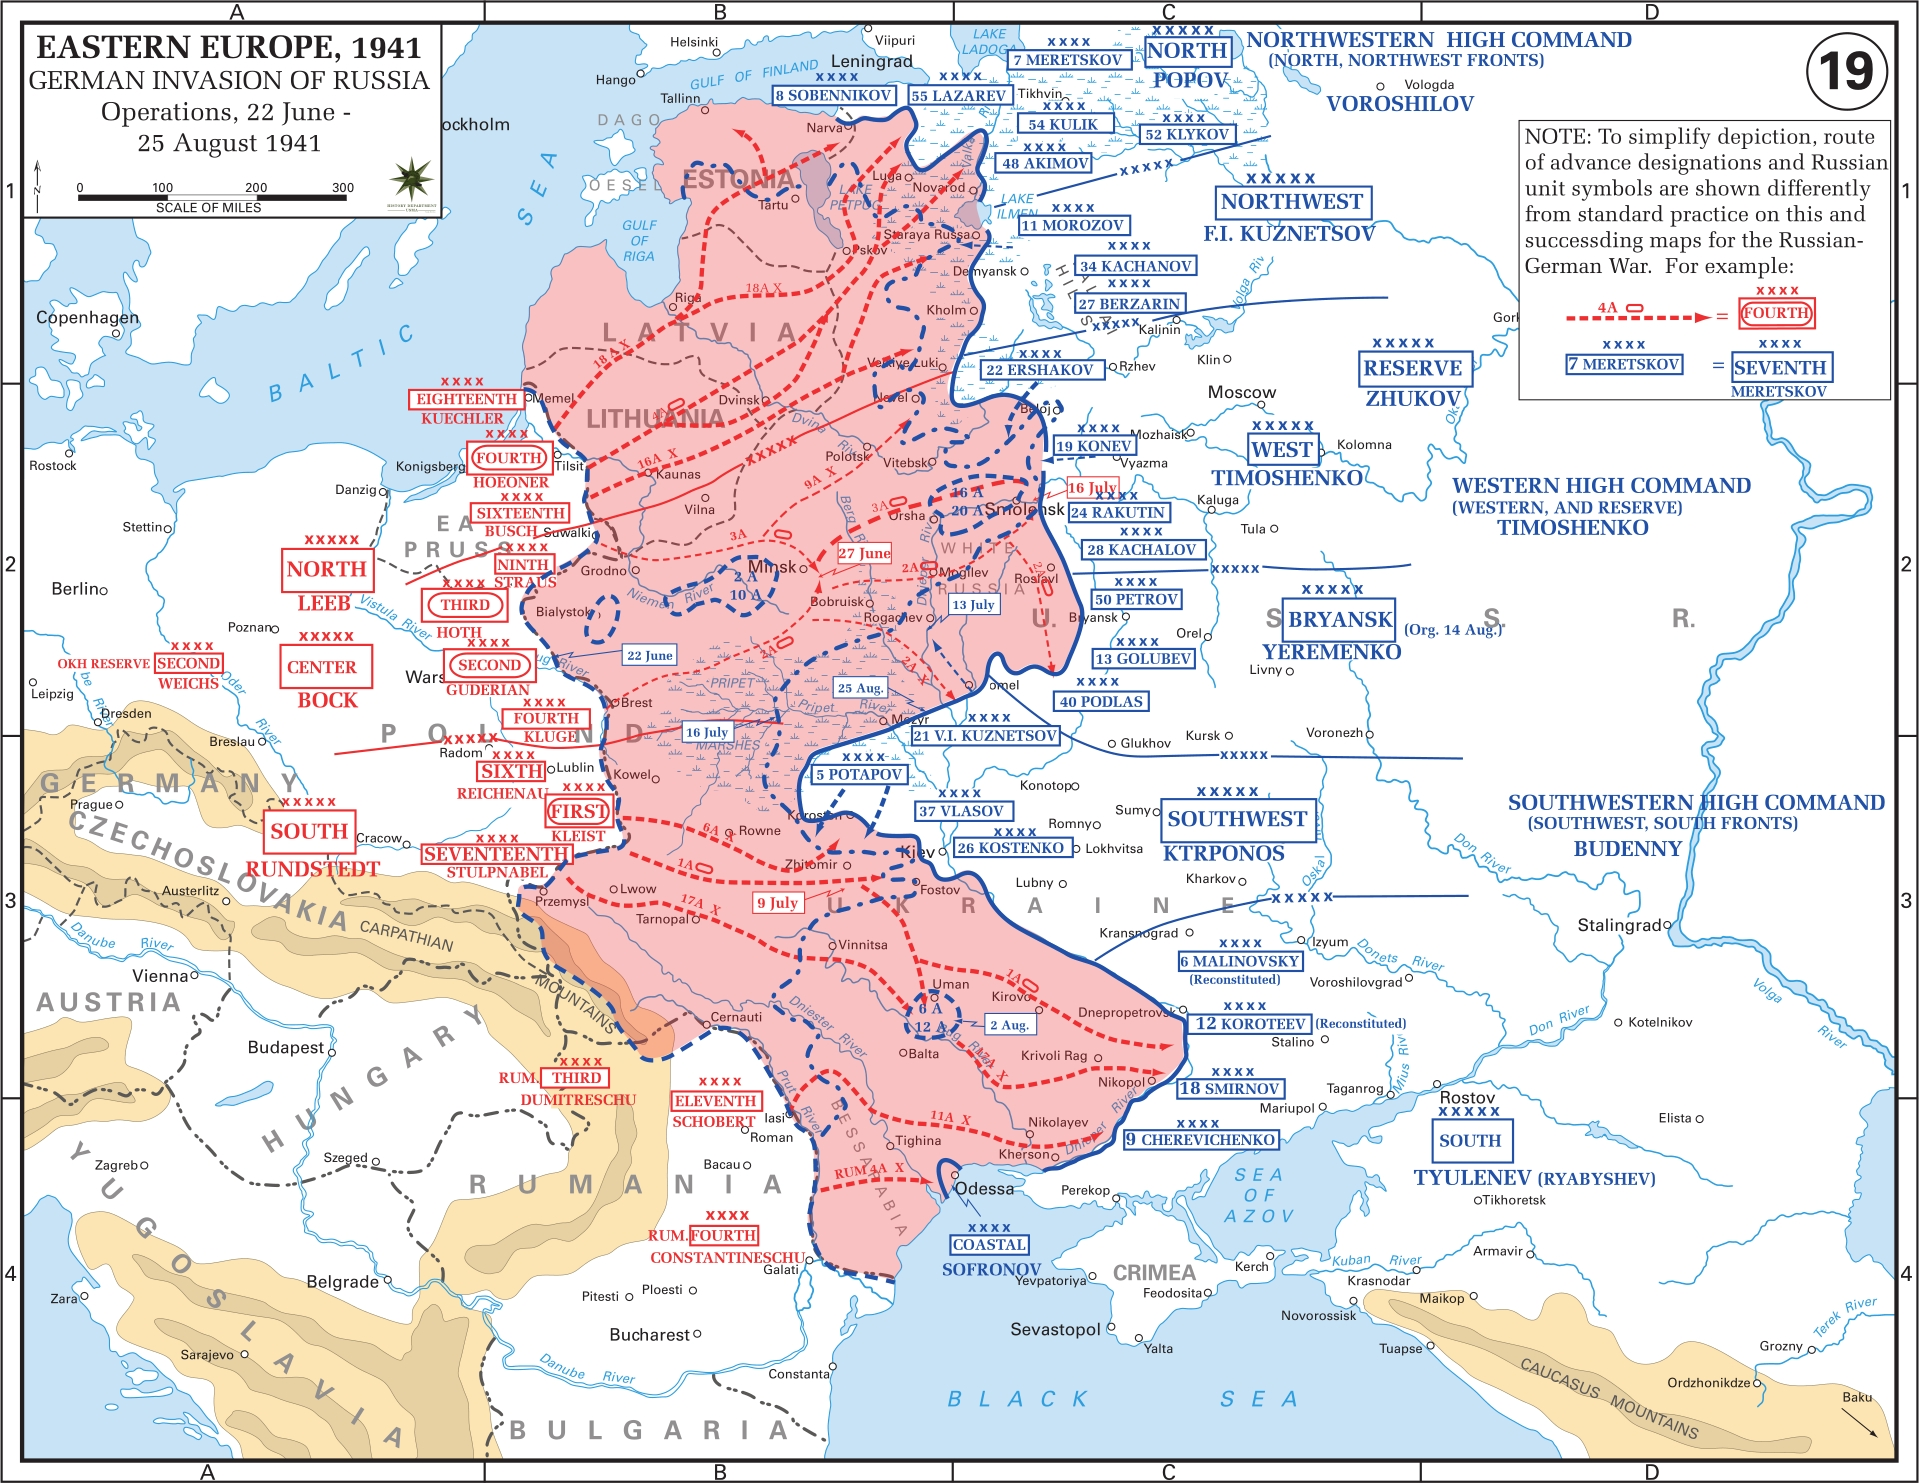 Eastern Front Maps Of World War Ii - Inflab - Medium within Map Of Germany During Ww2